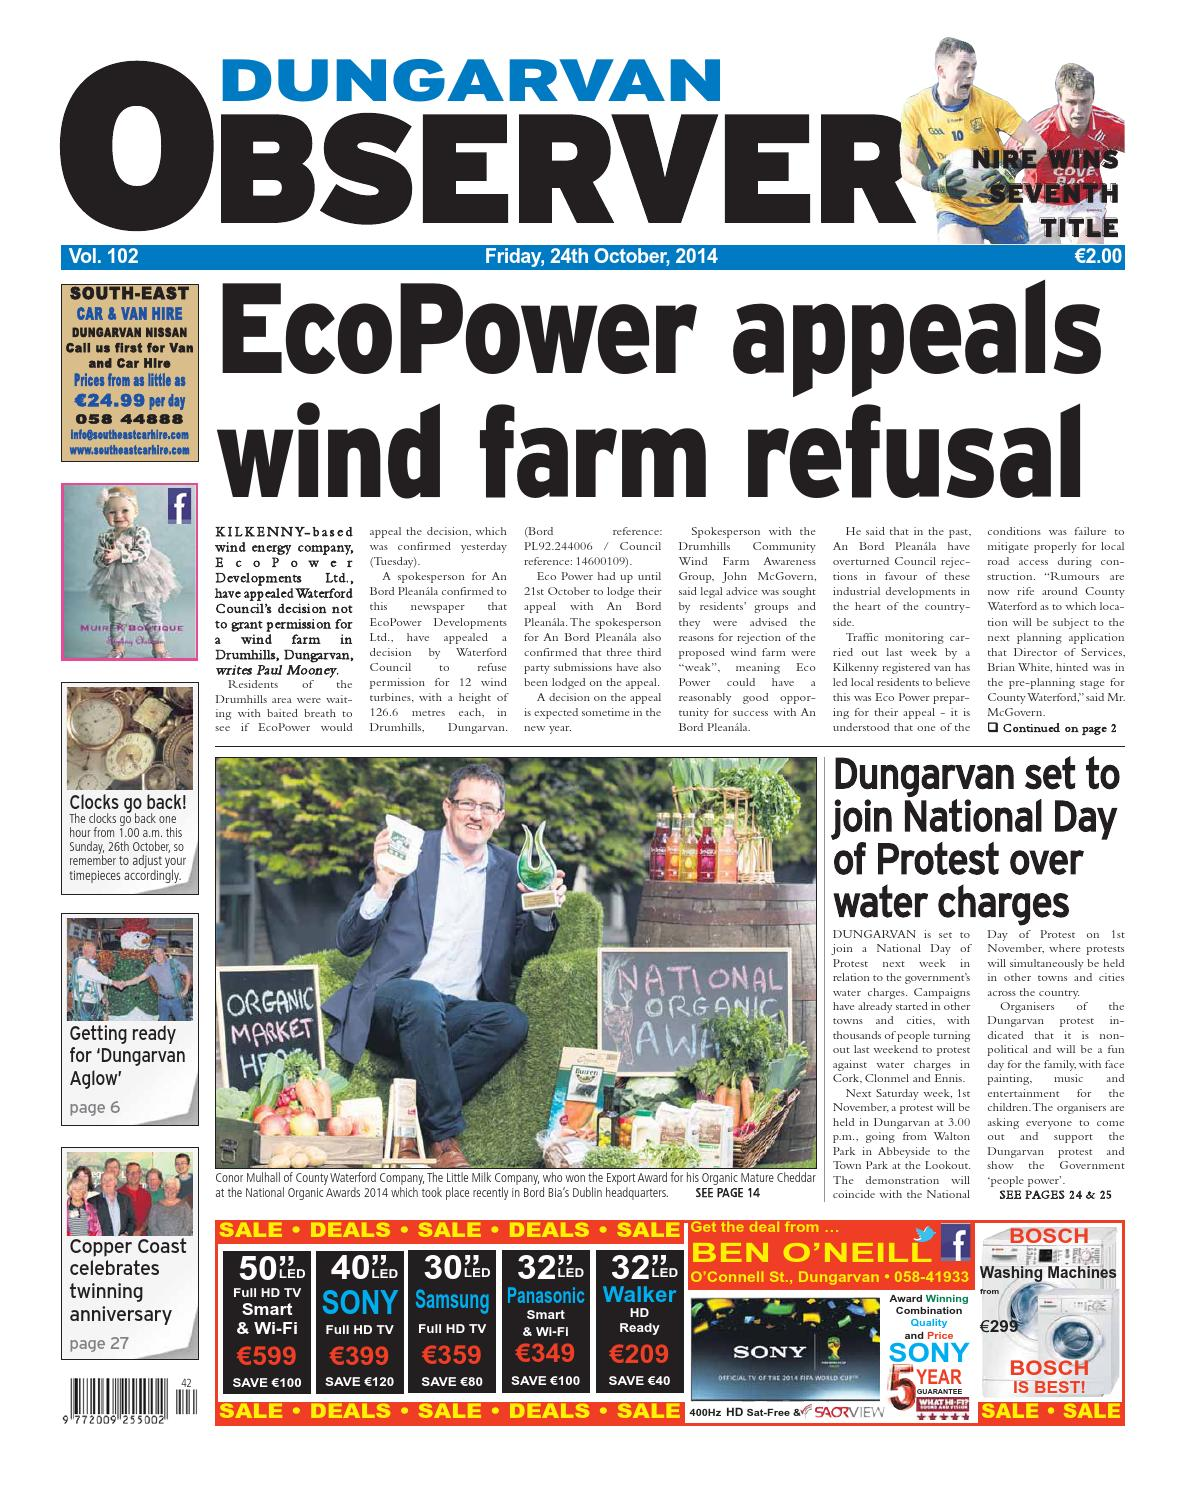 2f5fb45a283 Dungarvan observer 24 10 2014 edition by Dungarvan Observer - issuu